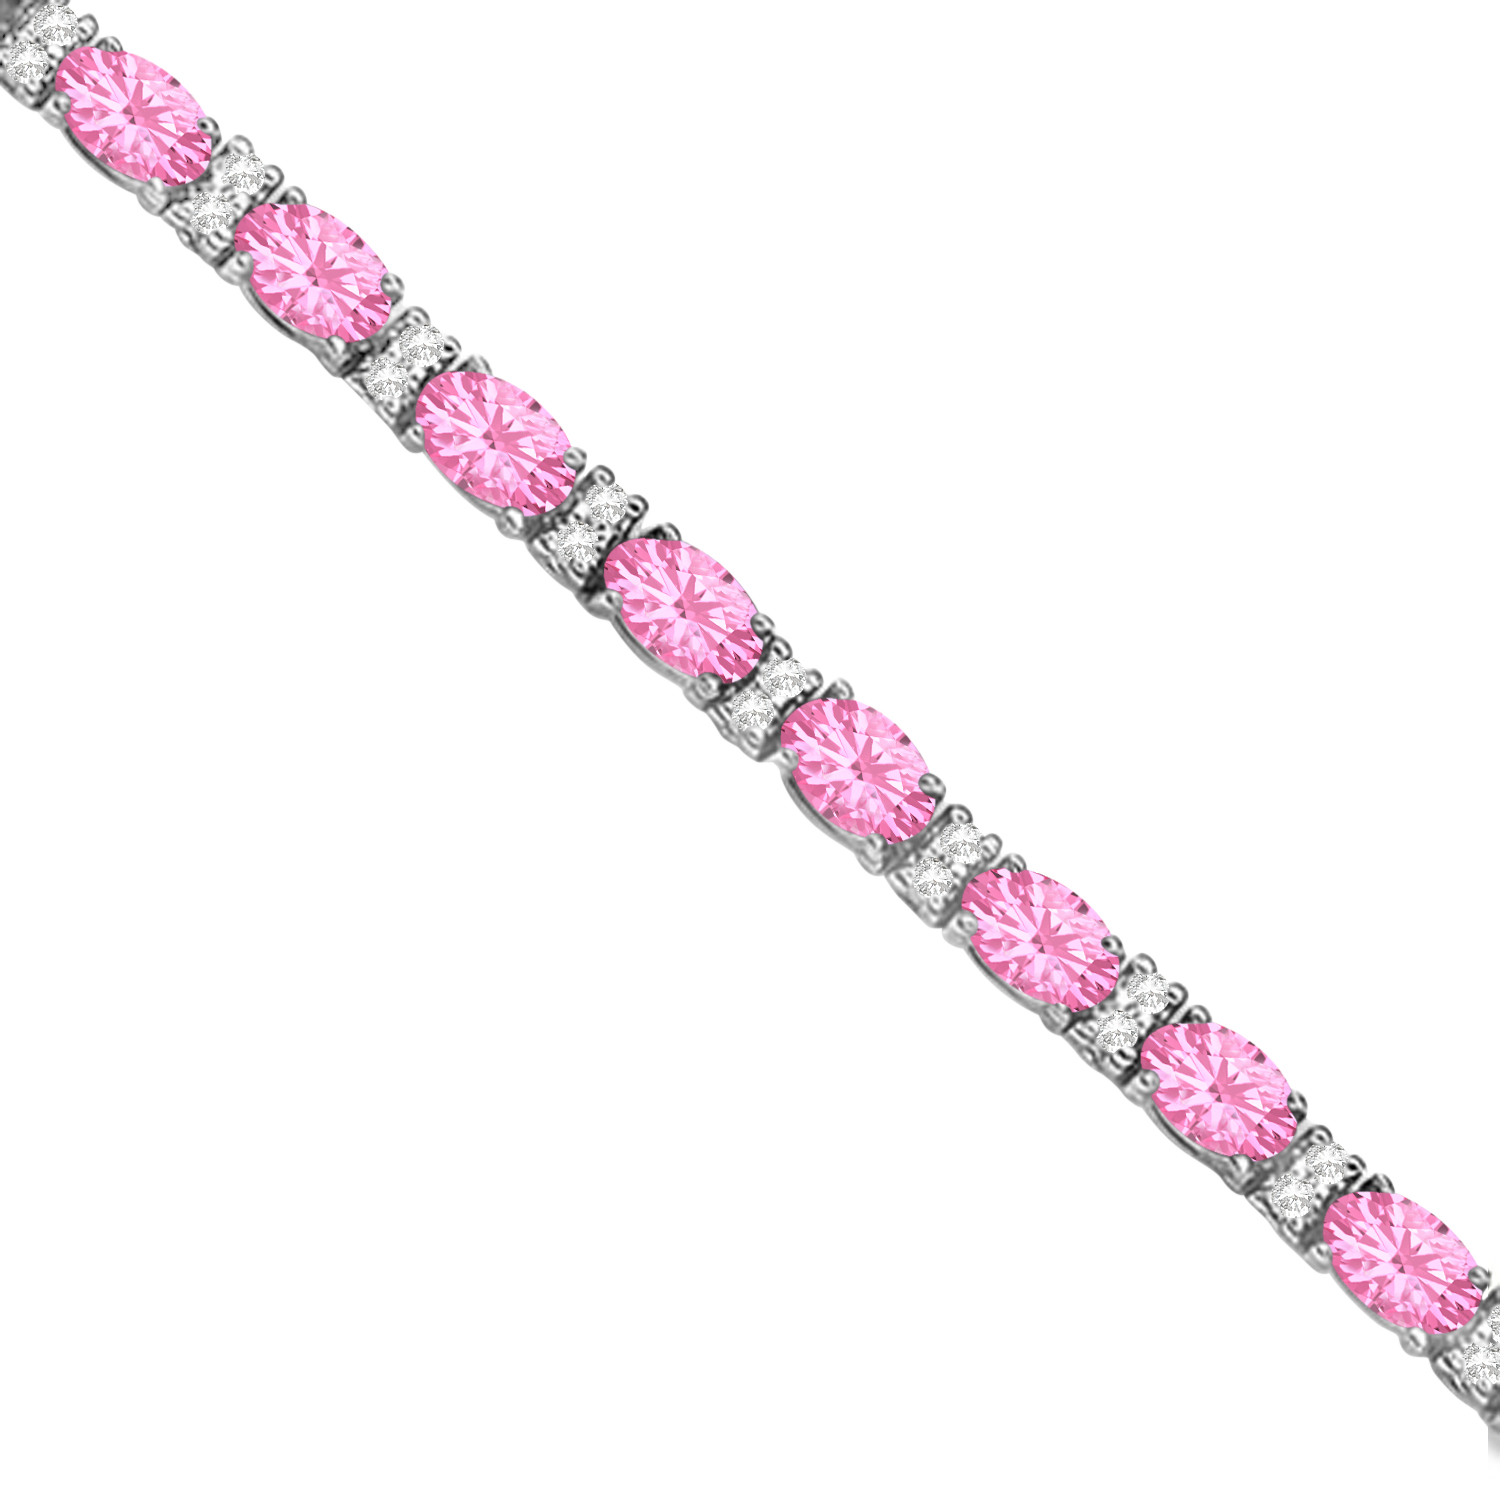 Diamond & Oval Cut Pink Tourmaline Tennis Bracelet 14k W ...